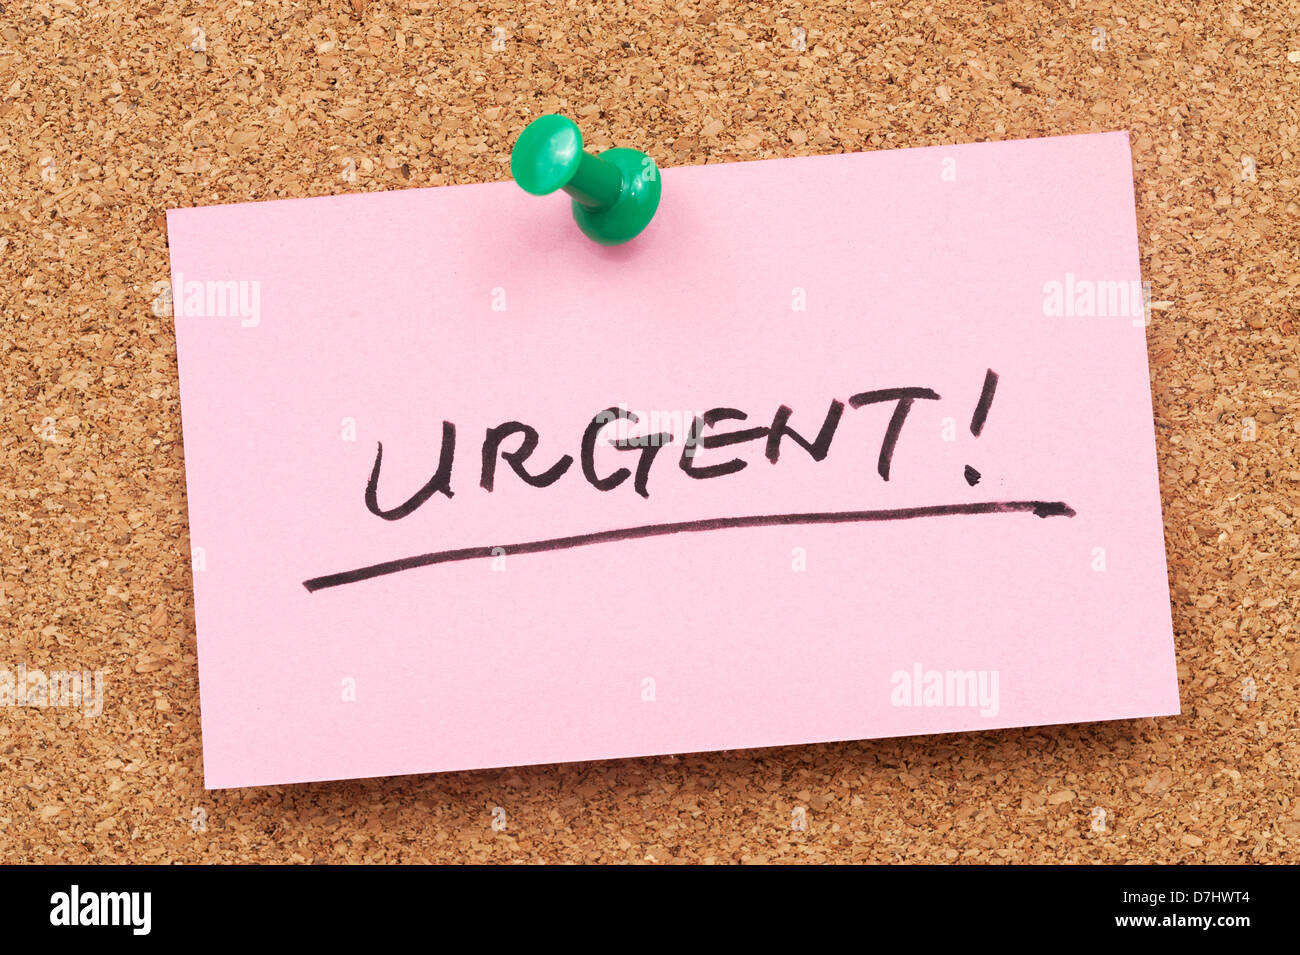 Urgent word written on paper and pinned on cork board - Stock Image